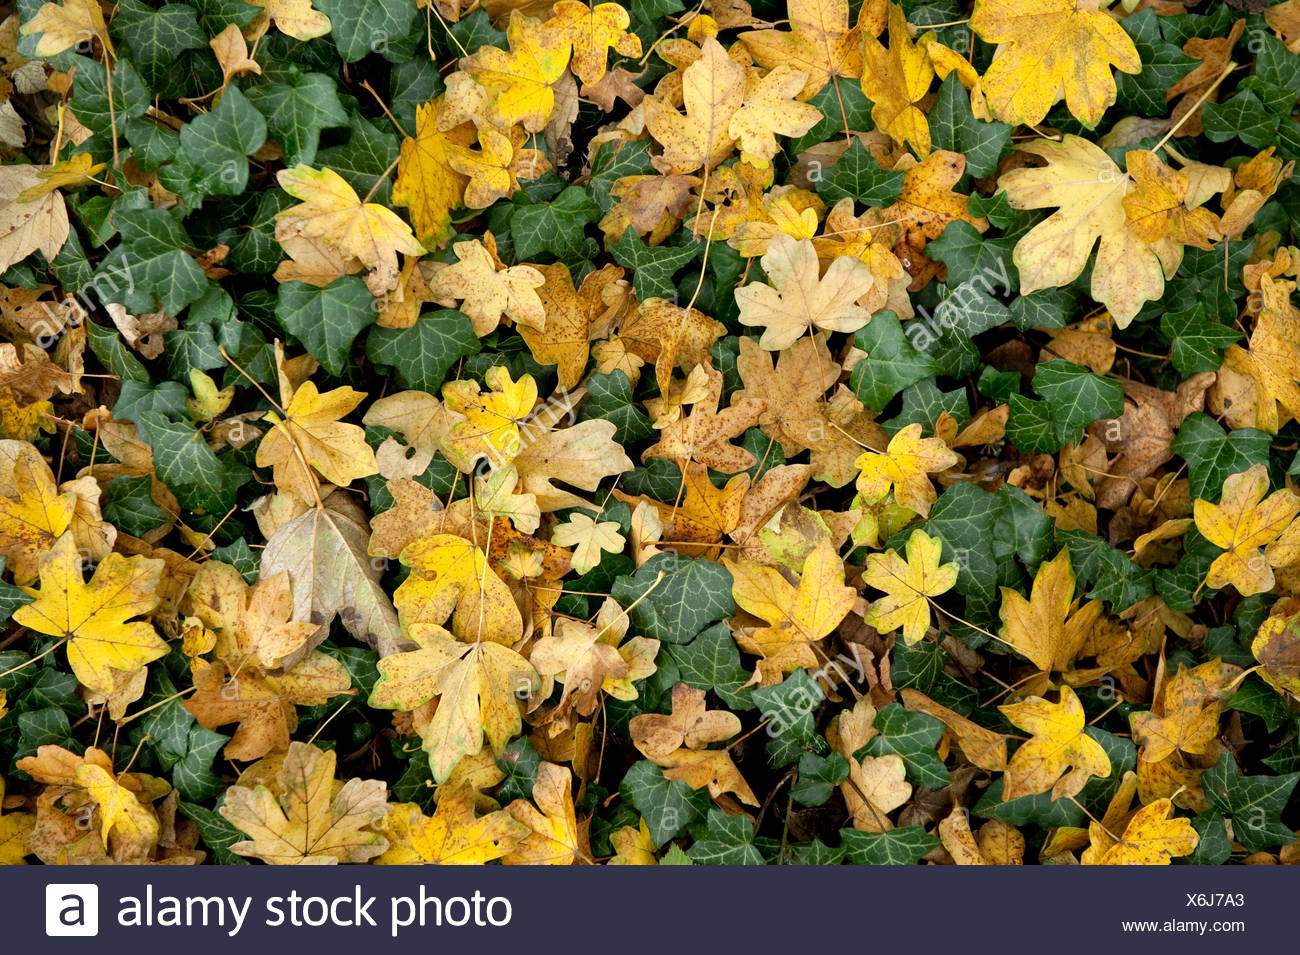 Autumn leaves on woodland floor Field Maple Acer campestre & Ivy Ranscombe Farm Nature Reserve Kent UK yellow green - Stock Image